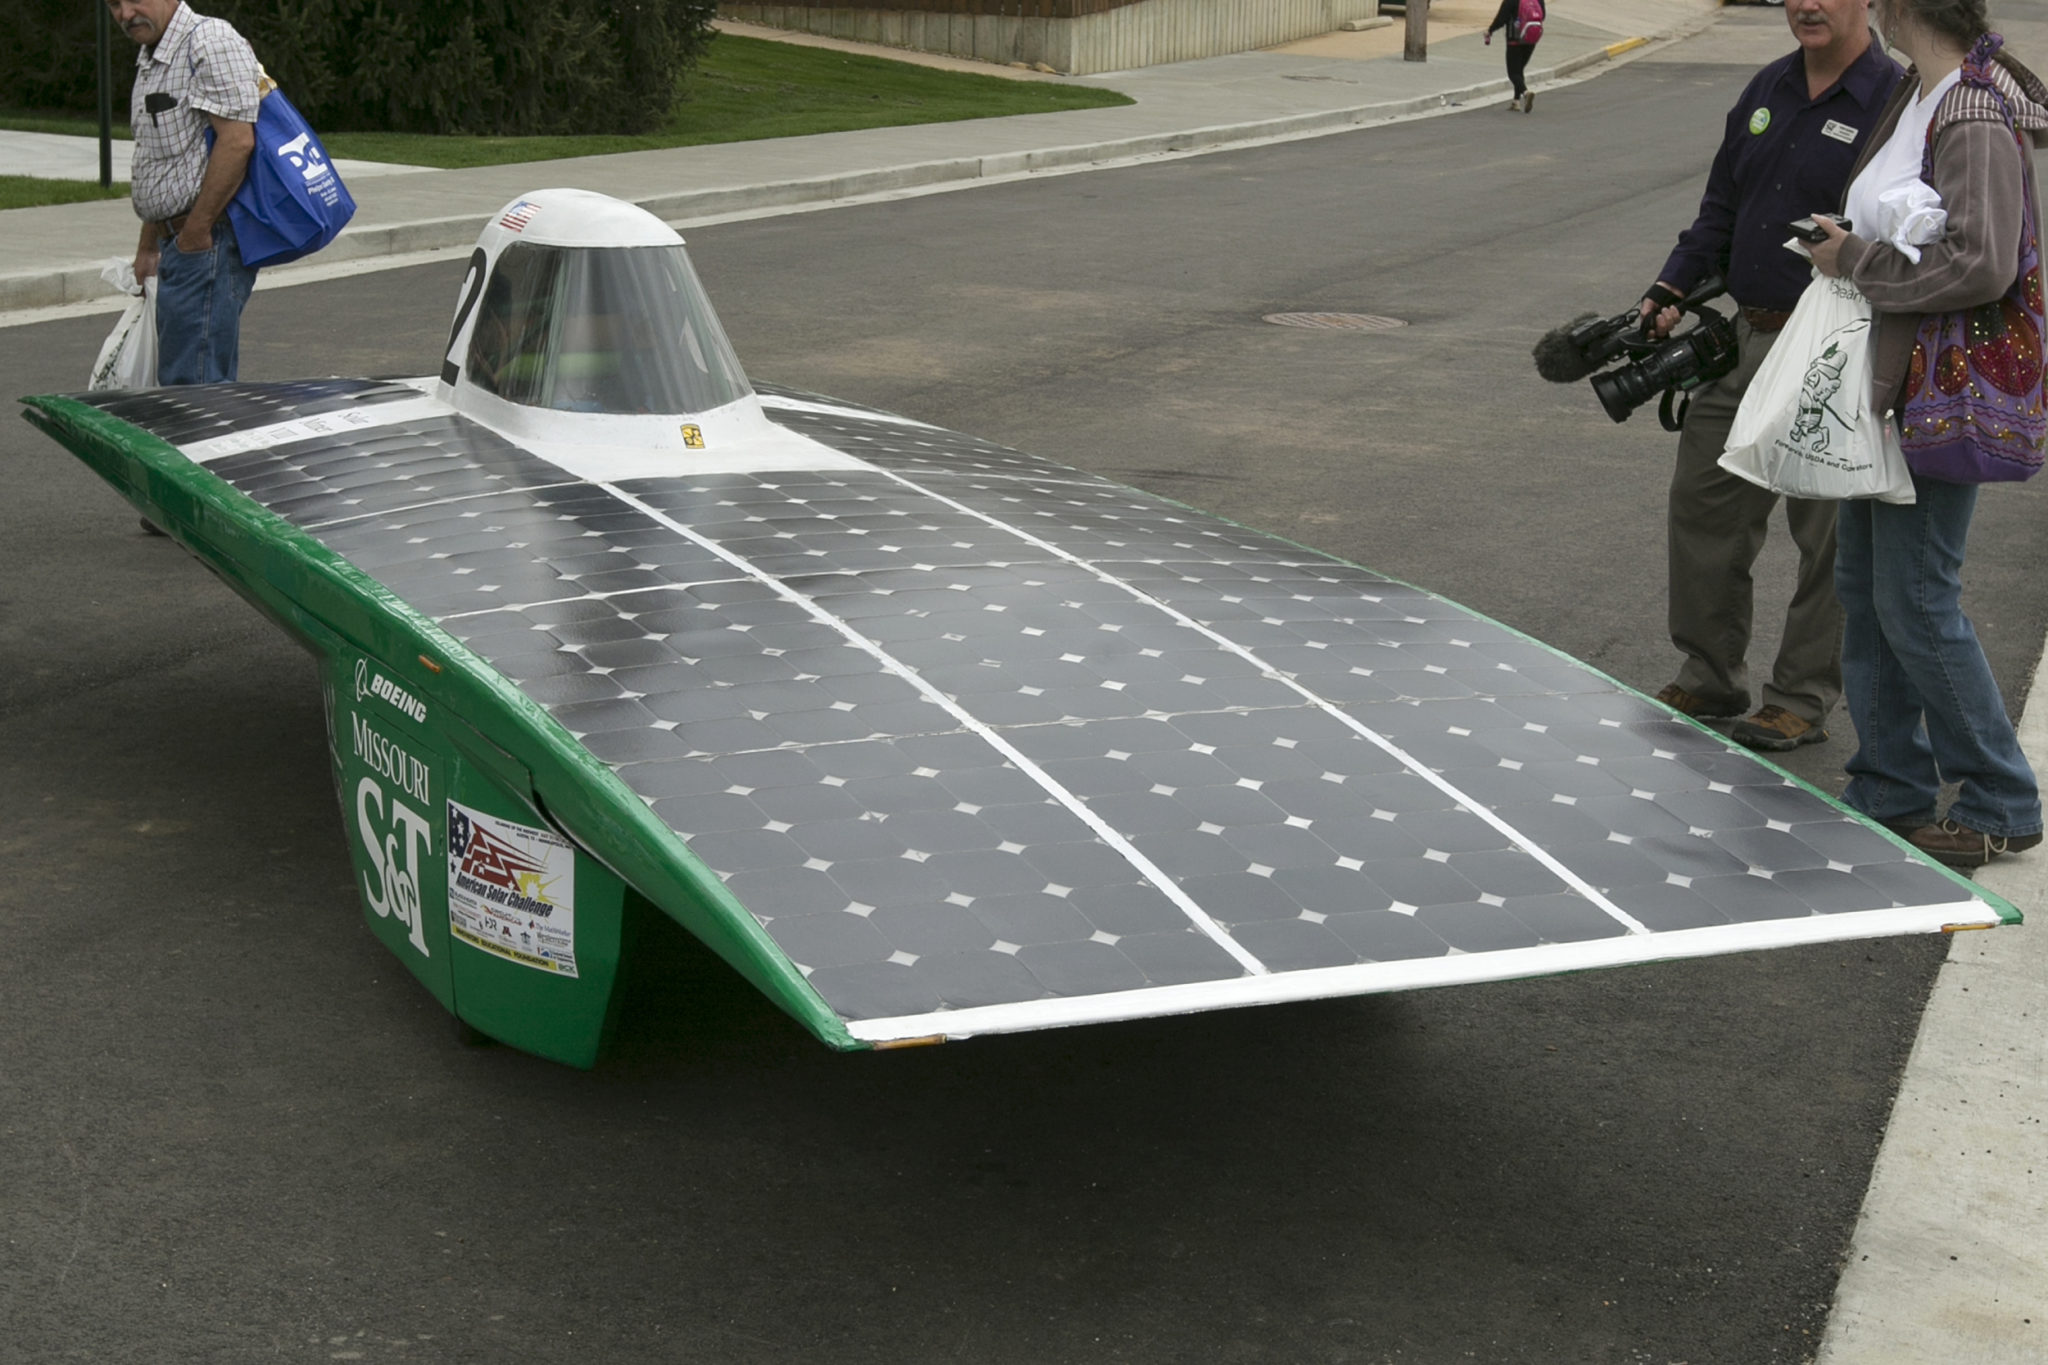 Missouri S Amp T News And Events Missouri S Amp T Solar Car